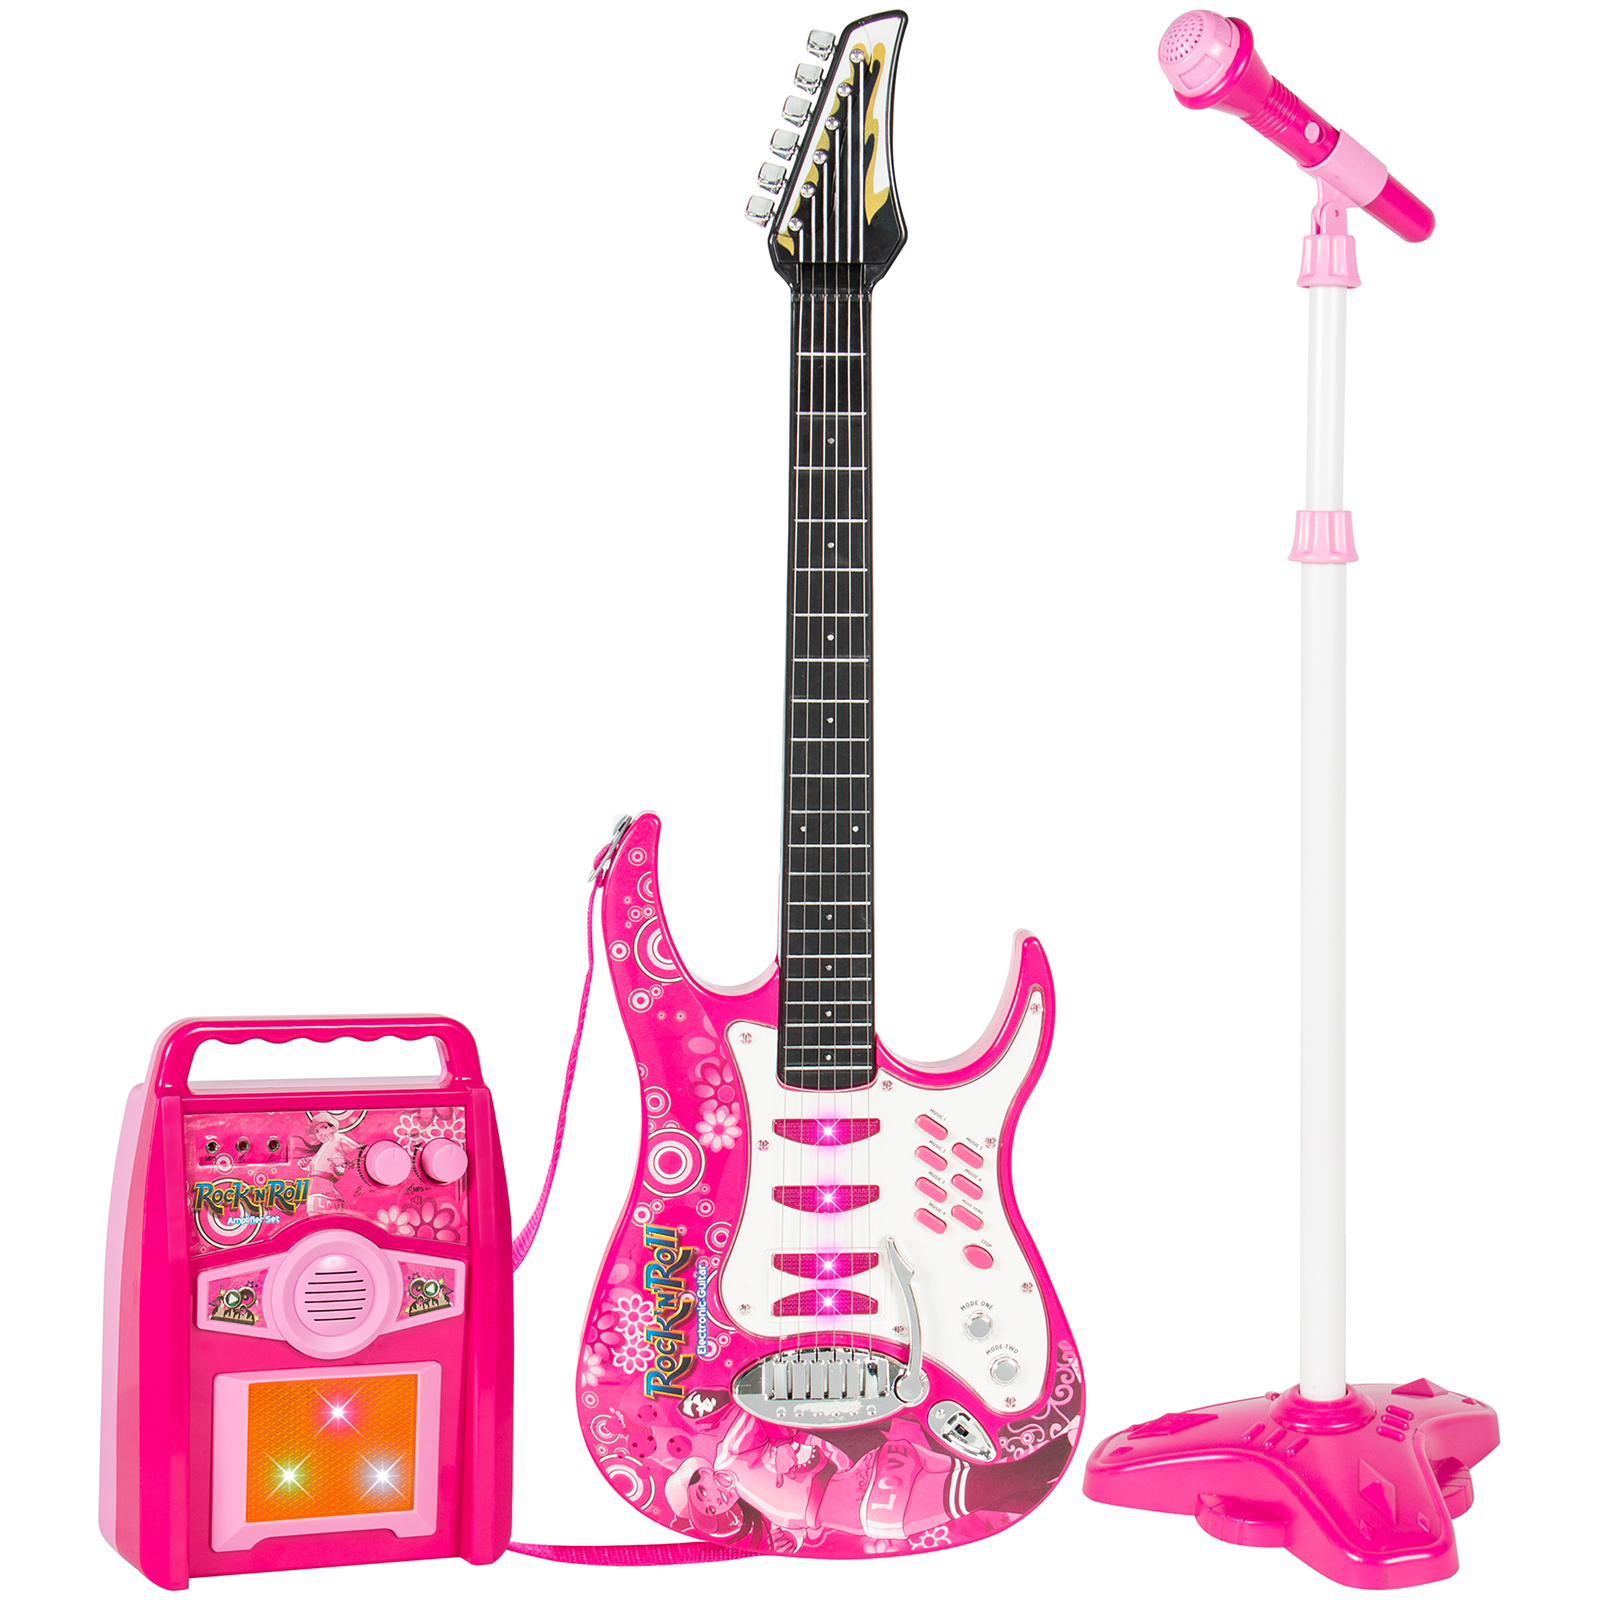 bcp kids electric guitar toy play set w 6 songs microphone amp 691205380594 ebay. Black Bedroom Furniture Sets. Home Design Ideas